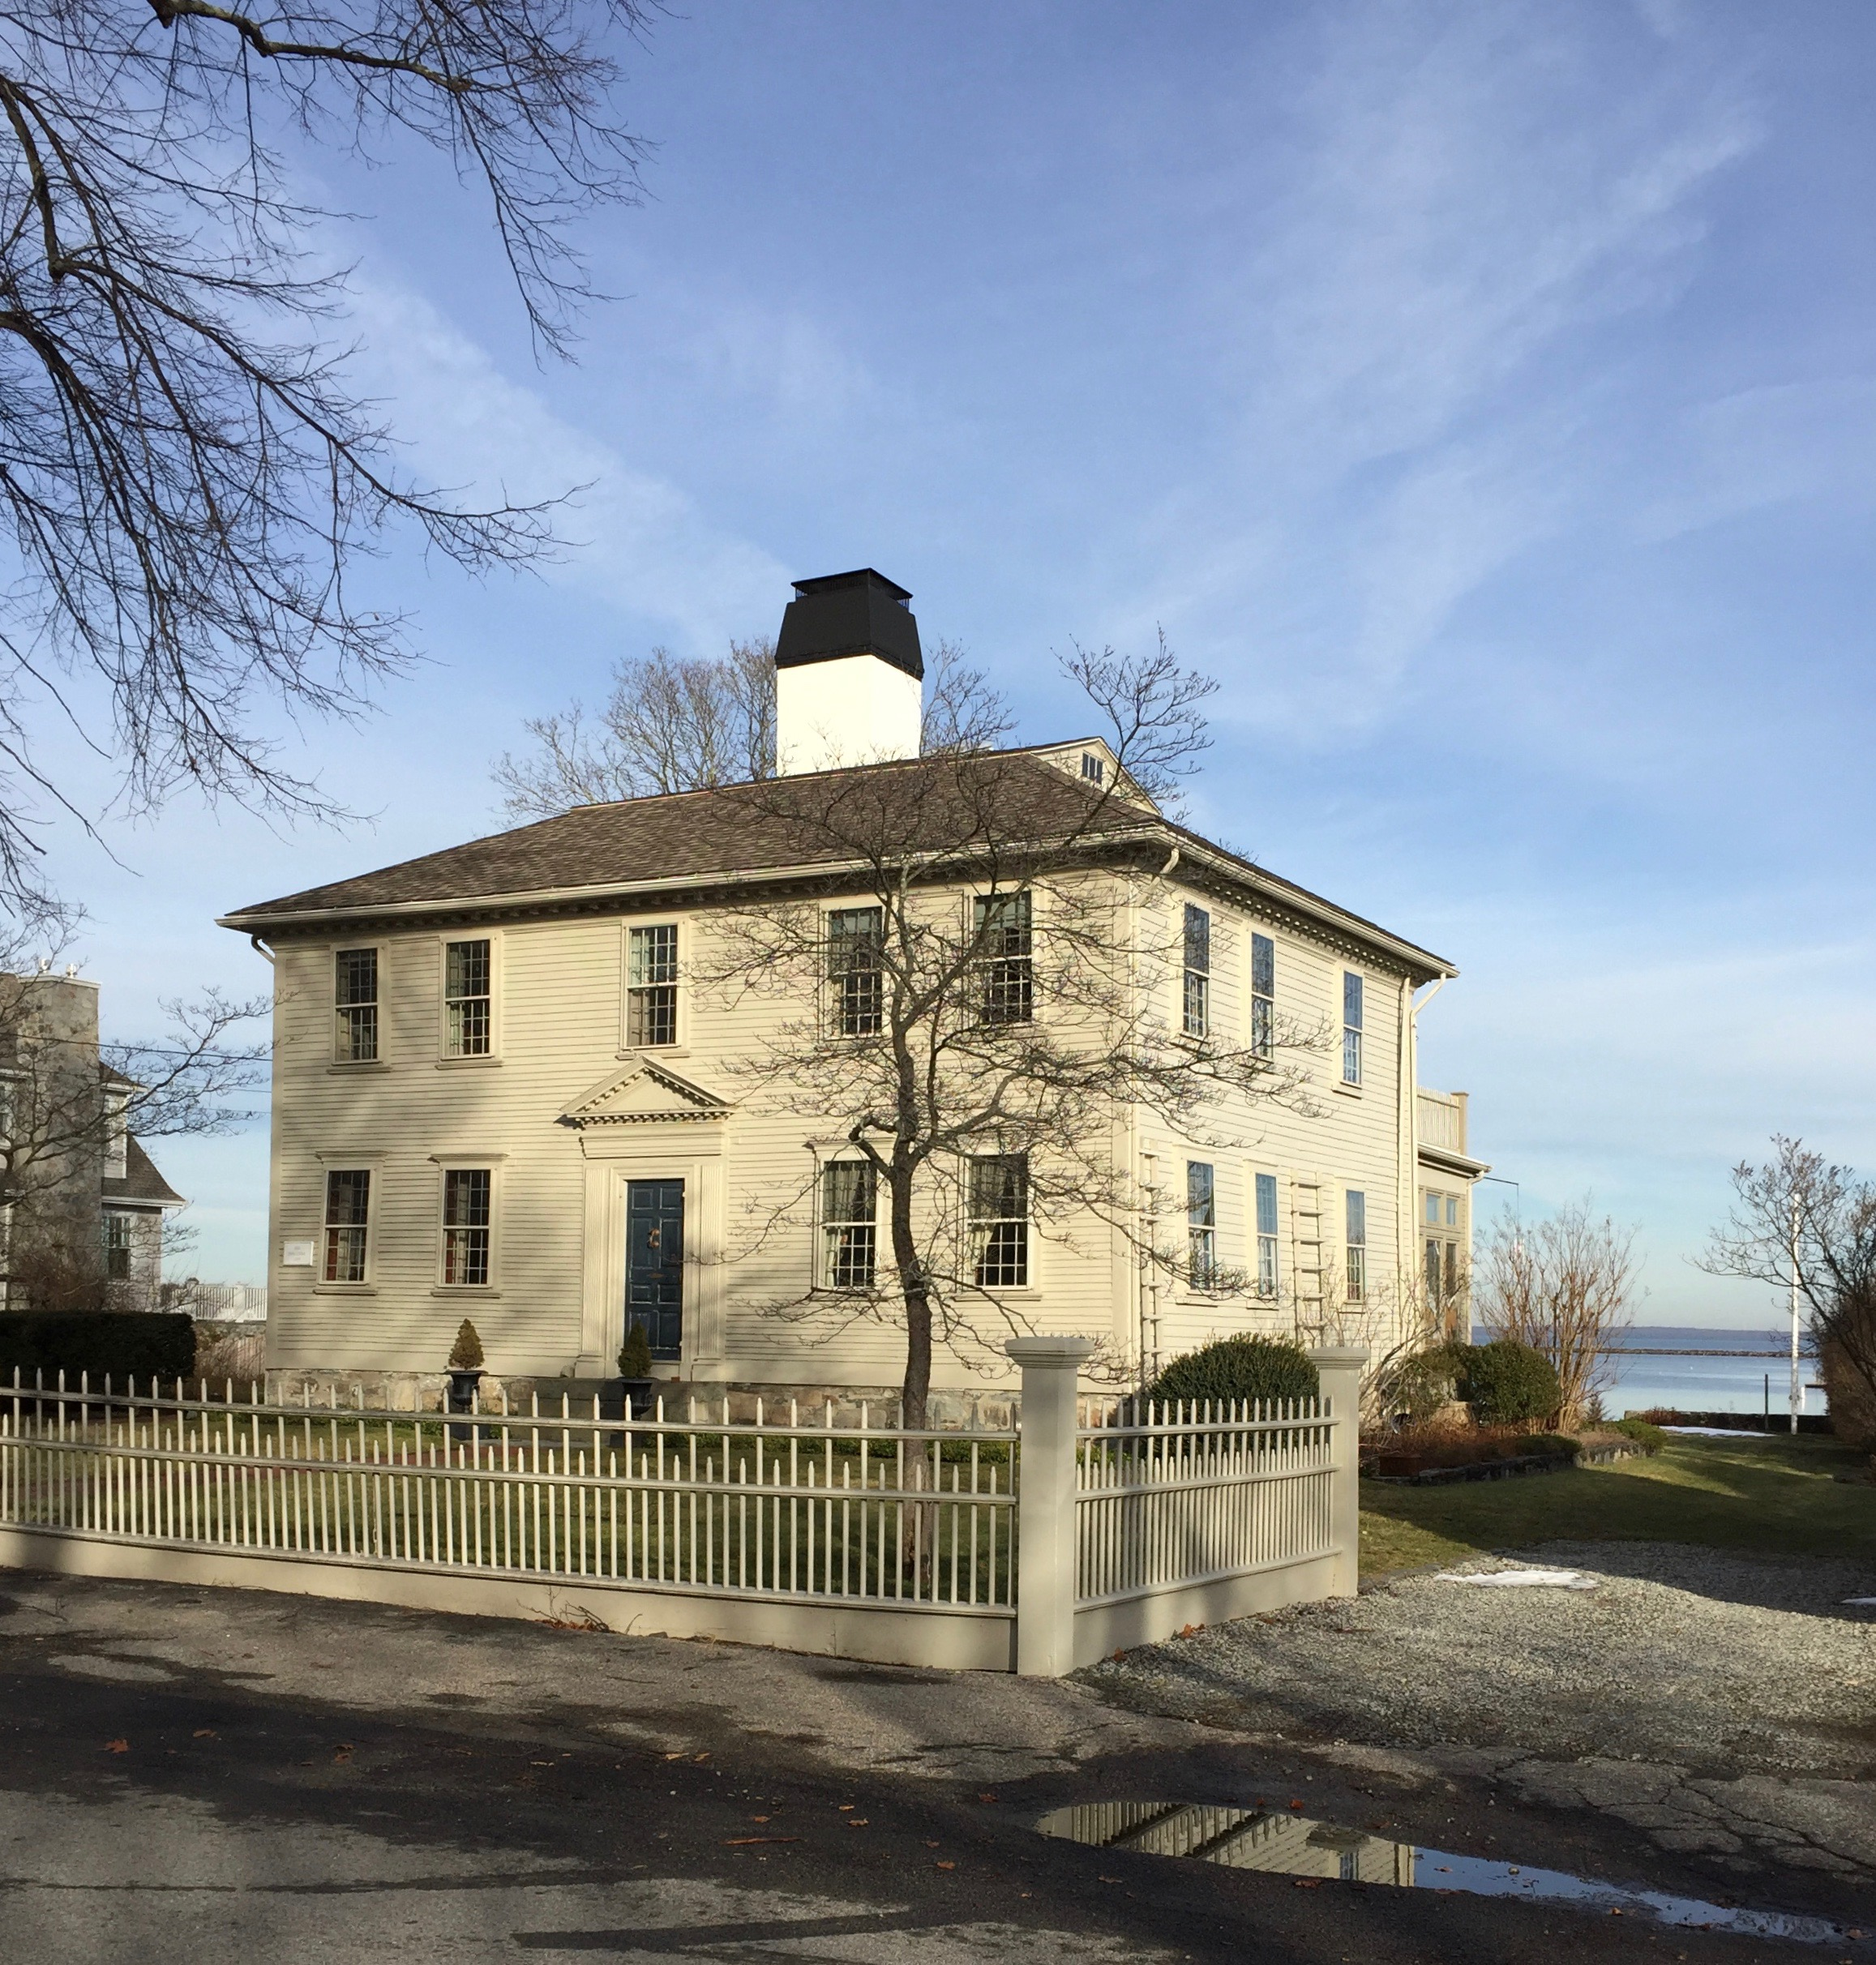 Wickford Rhode Island Antique home on the water